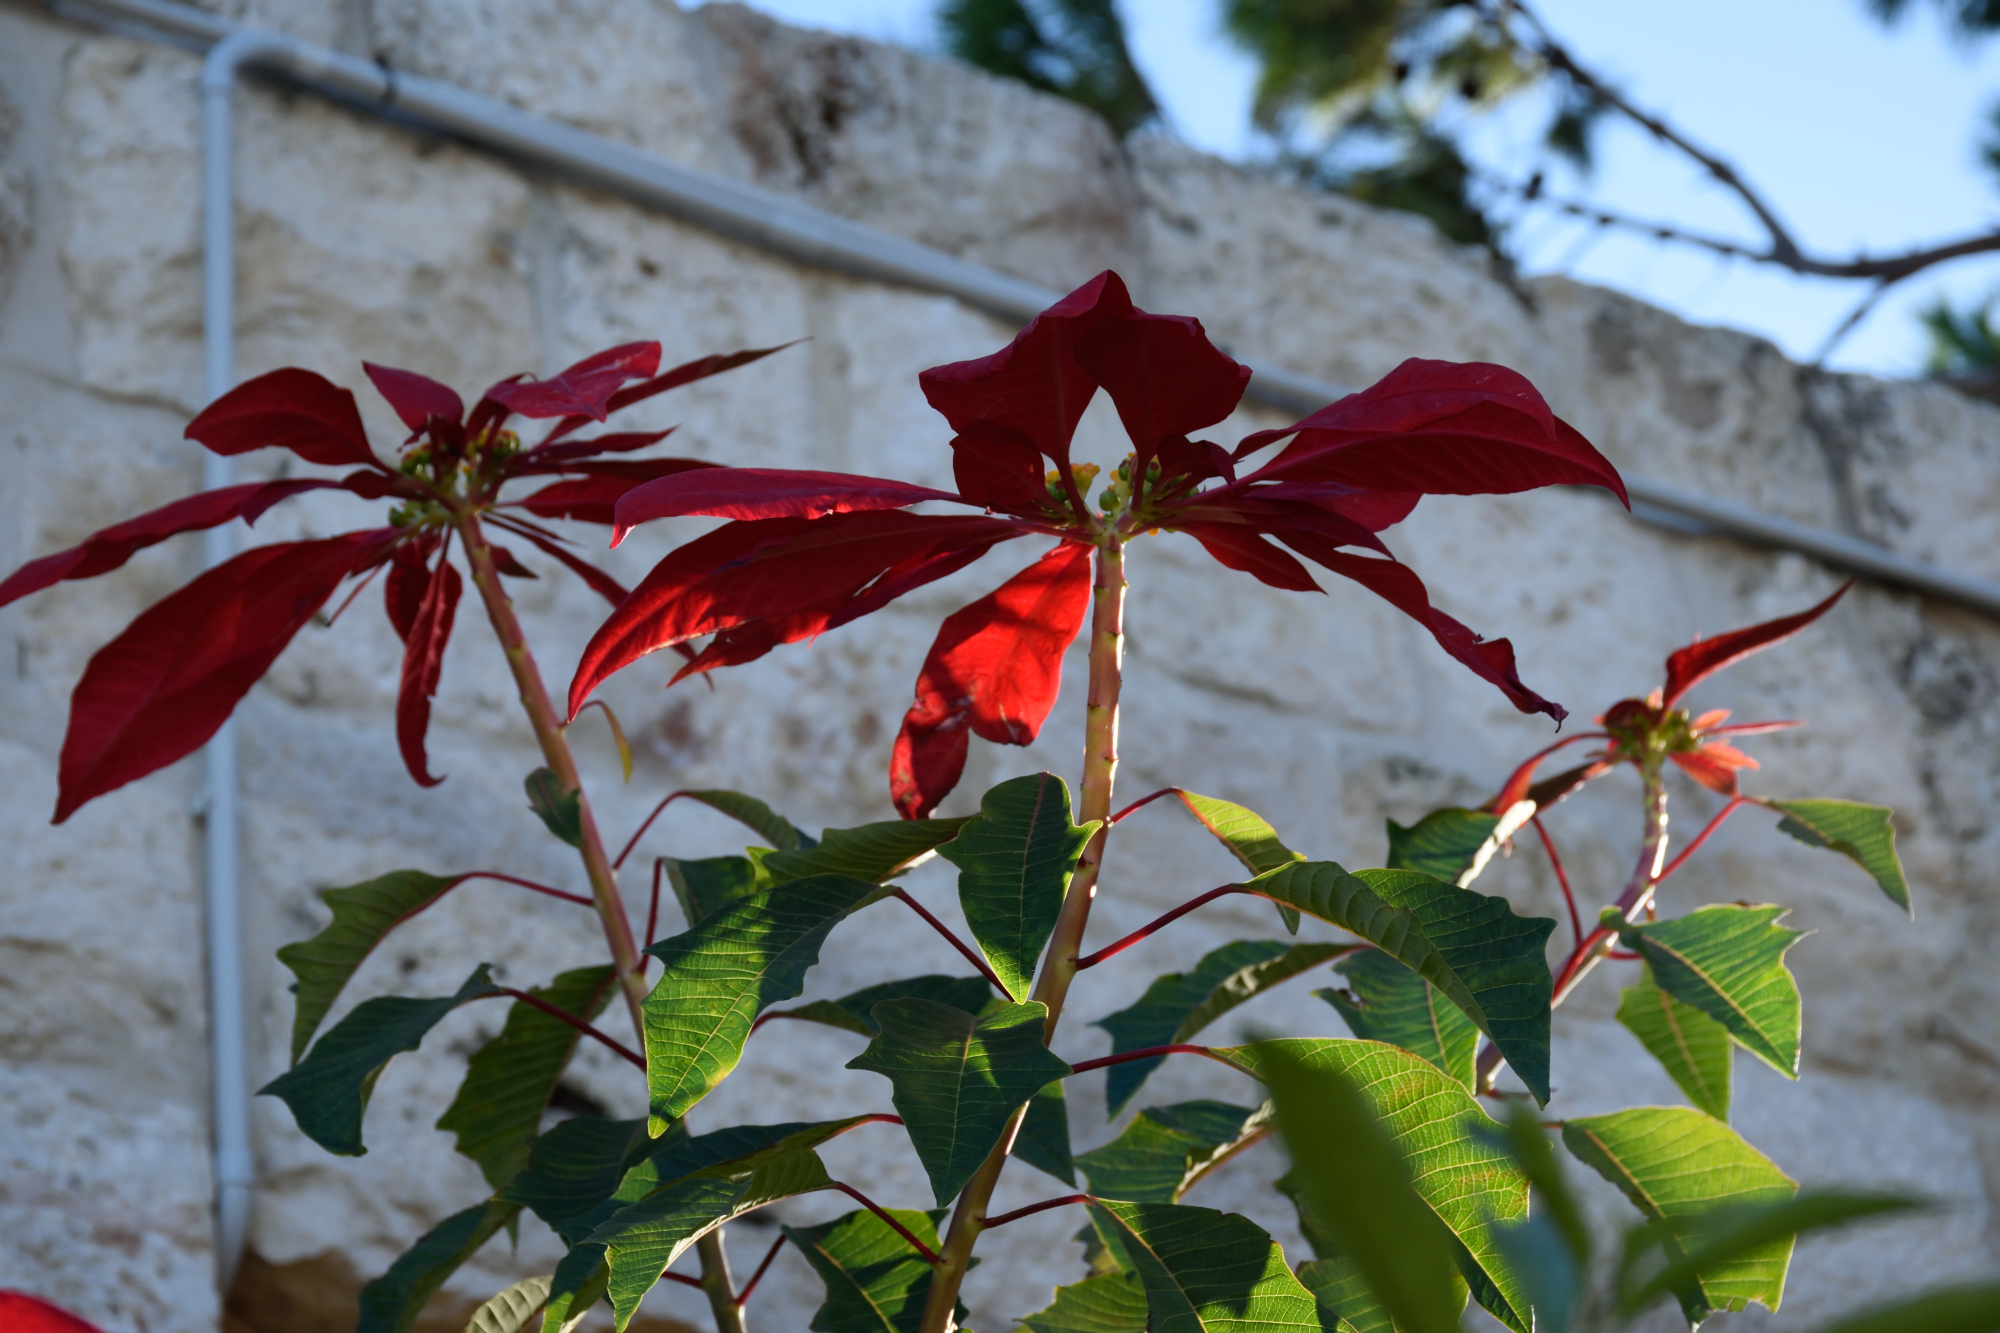 Poinsettia in the Balamand monastery in December